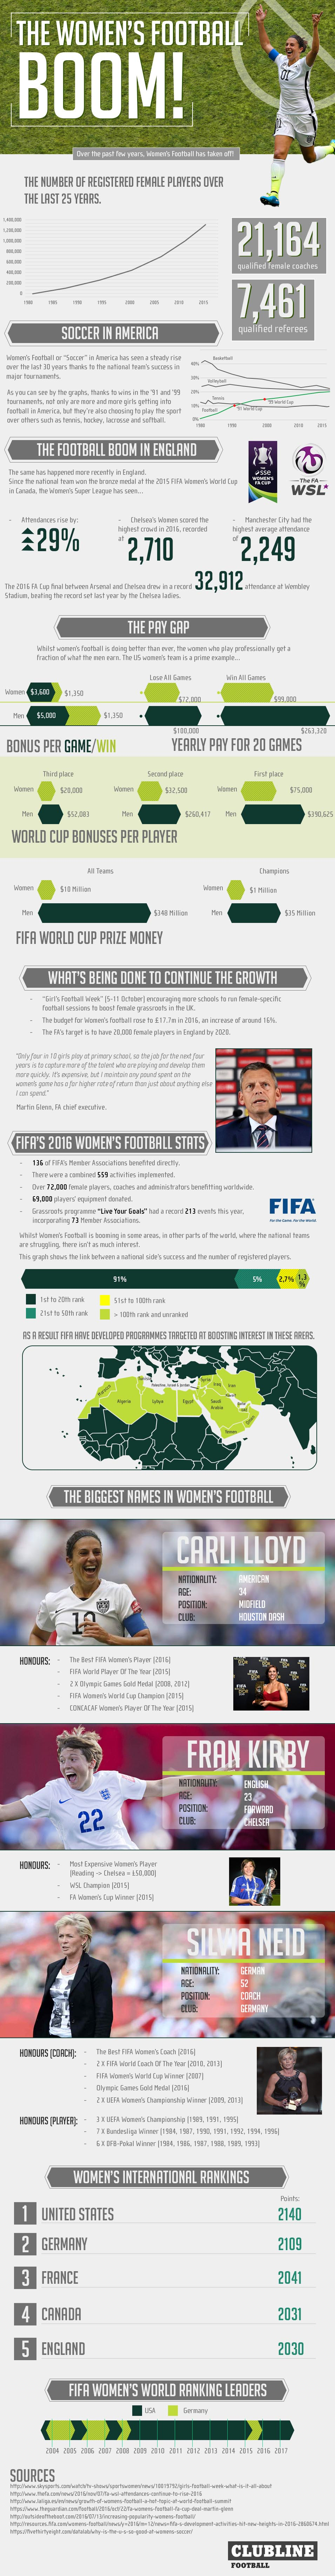 The Women's Football BOOM!